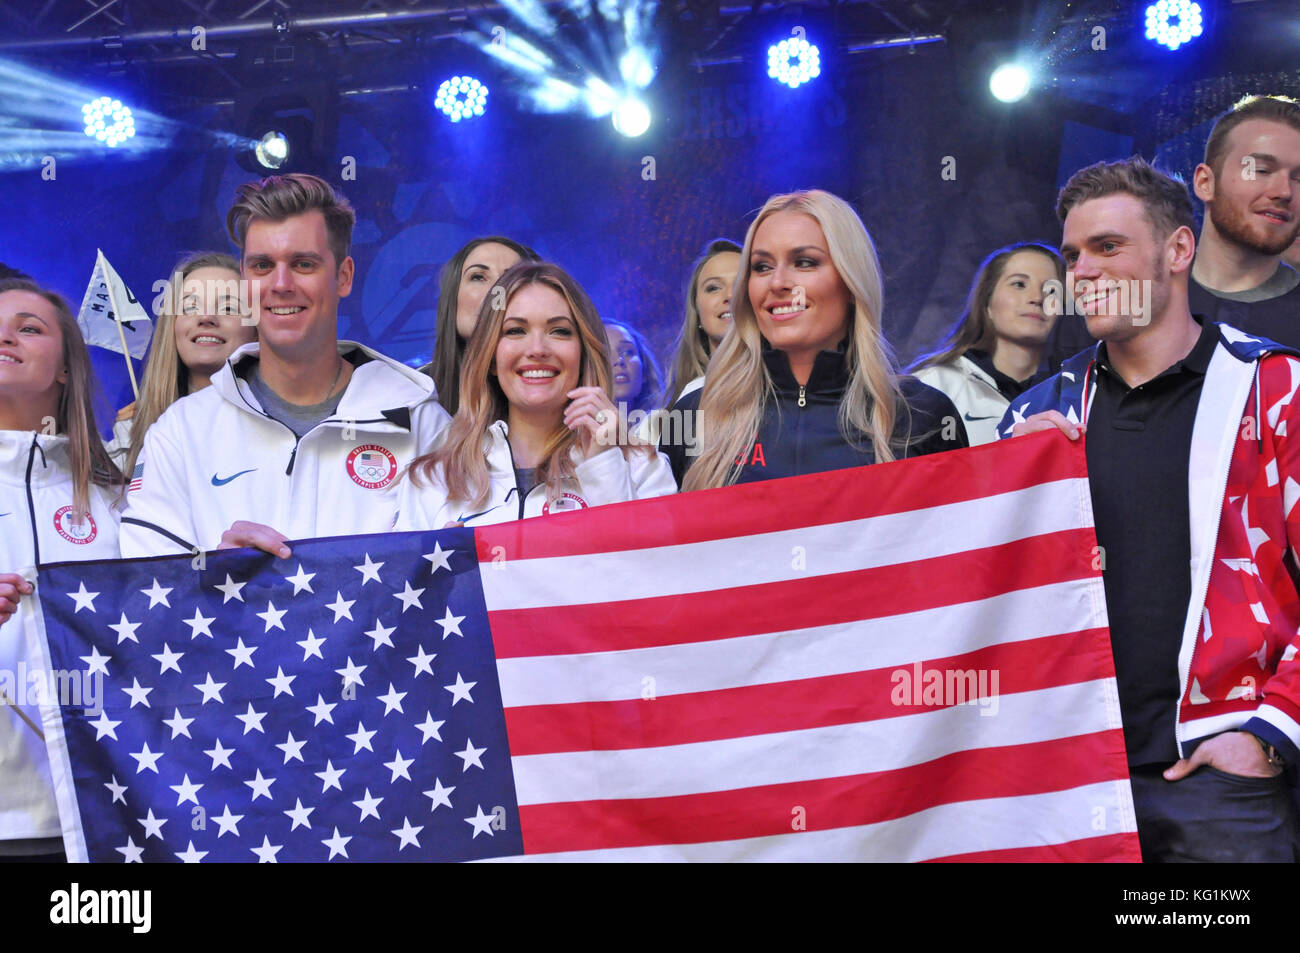 Times Square, New York, NY. Team USA teammates Alex Deibold, Amy Purdy, Linsey Vonn, and Gus Kenworthy had a great - Stock Image